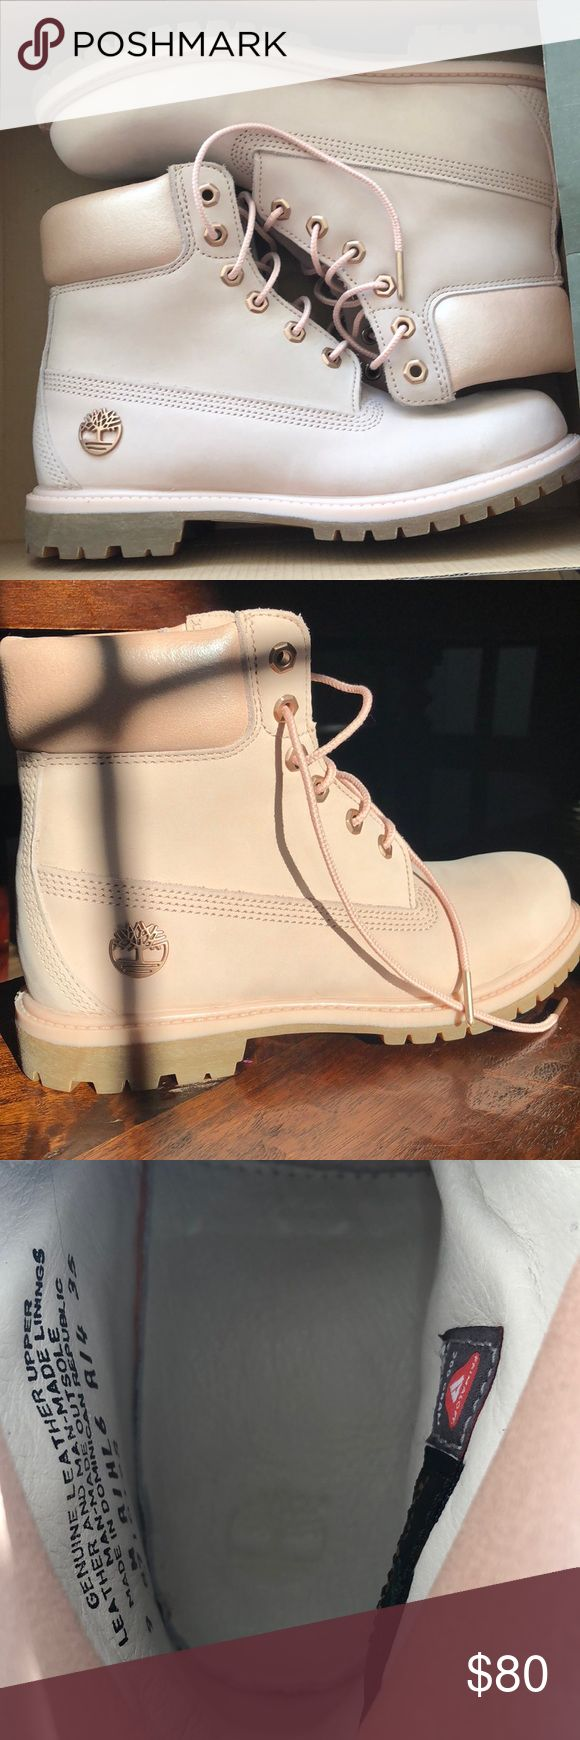 Women's light pink Timberland boots Super comfortable, they are waterproof, and fashionable Timberland Shoes Lace Up Boots